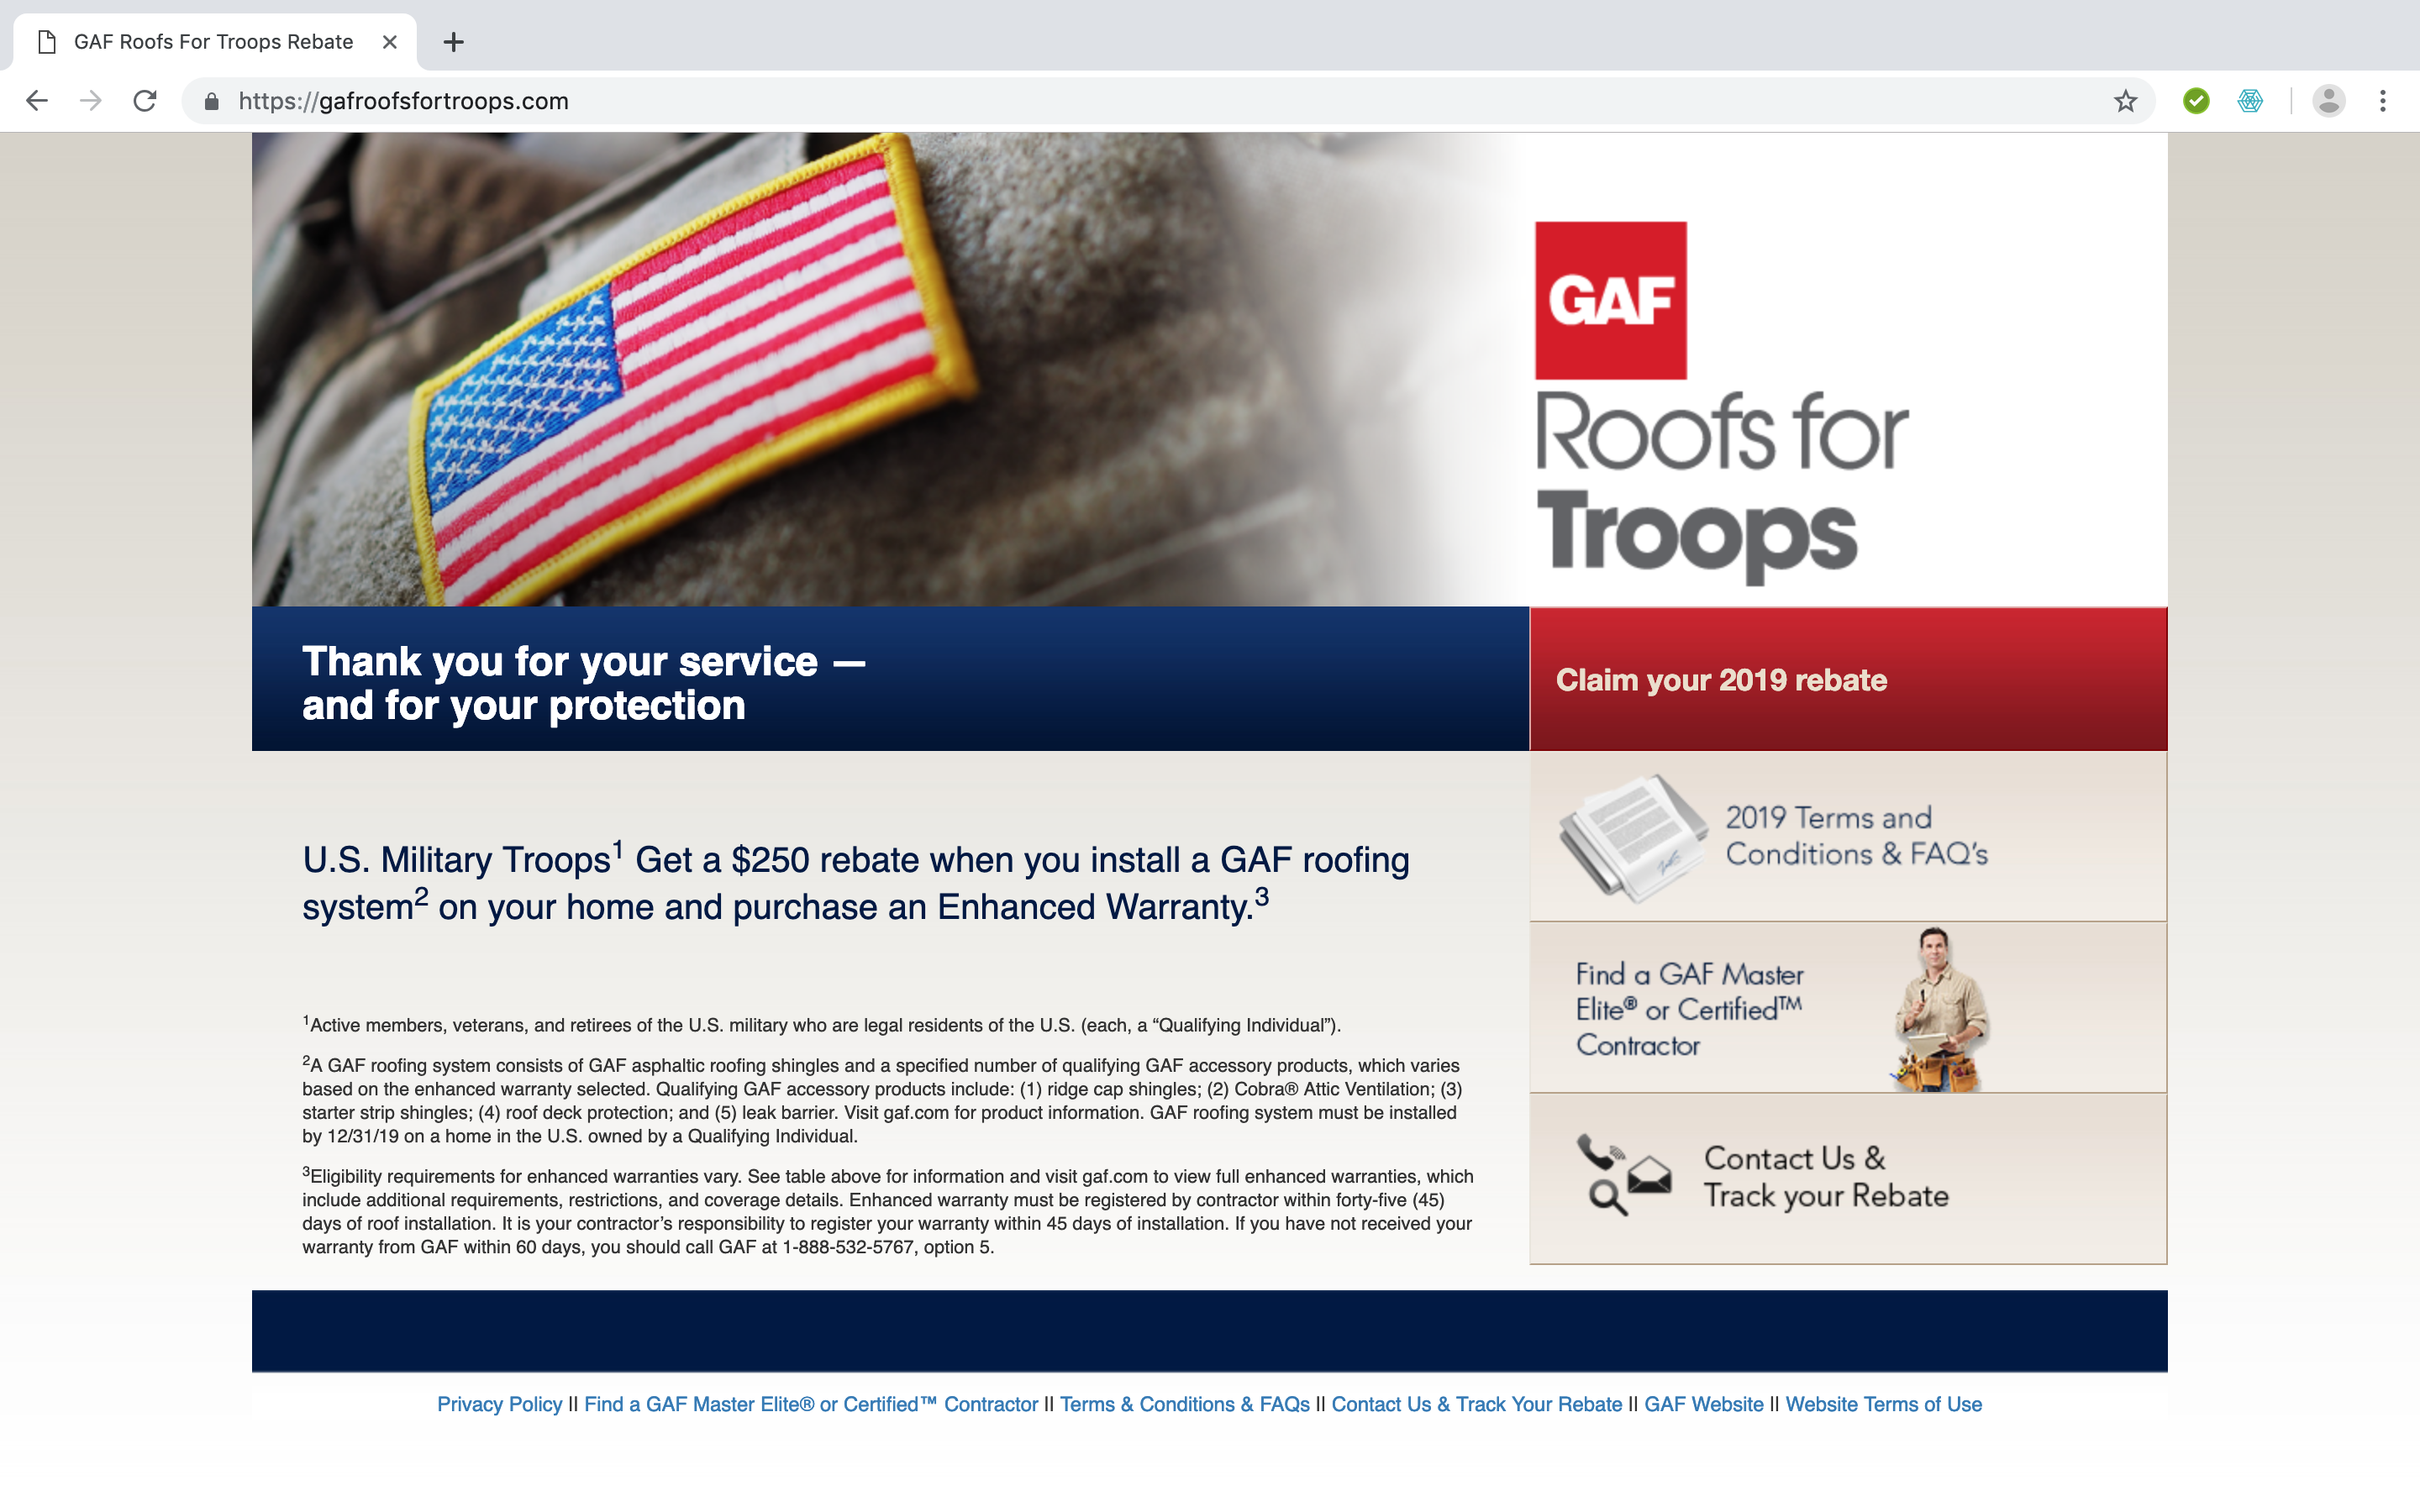 GAF-Roofs-For-Troops-Home